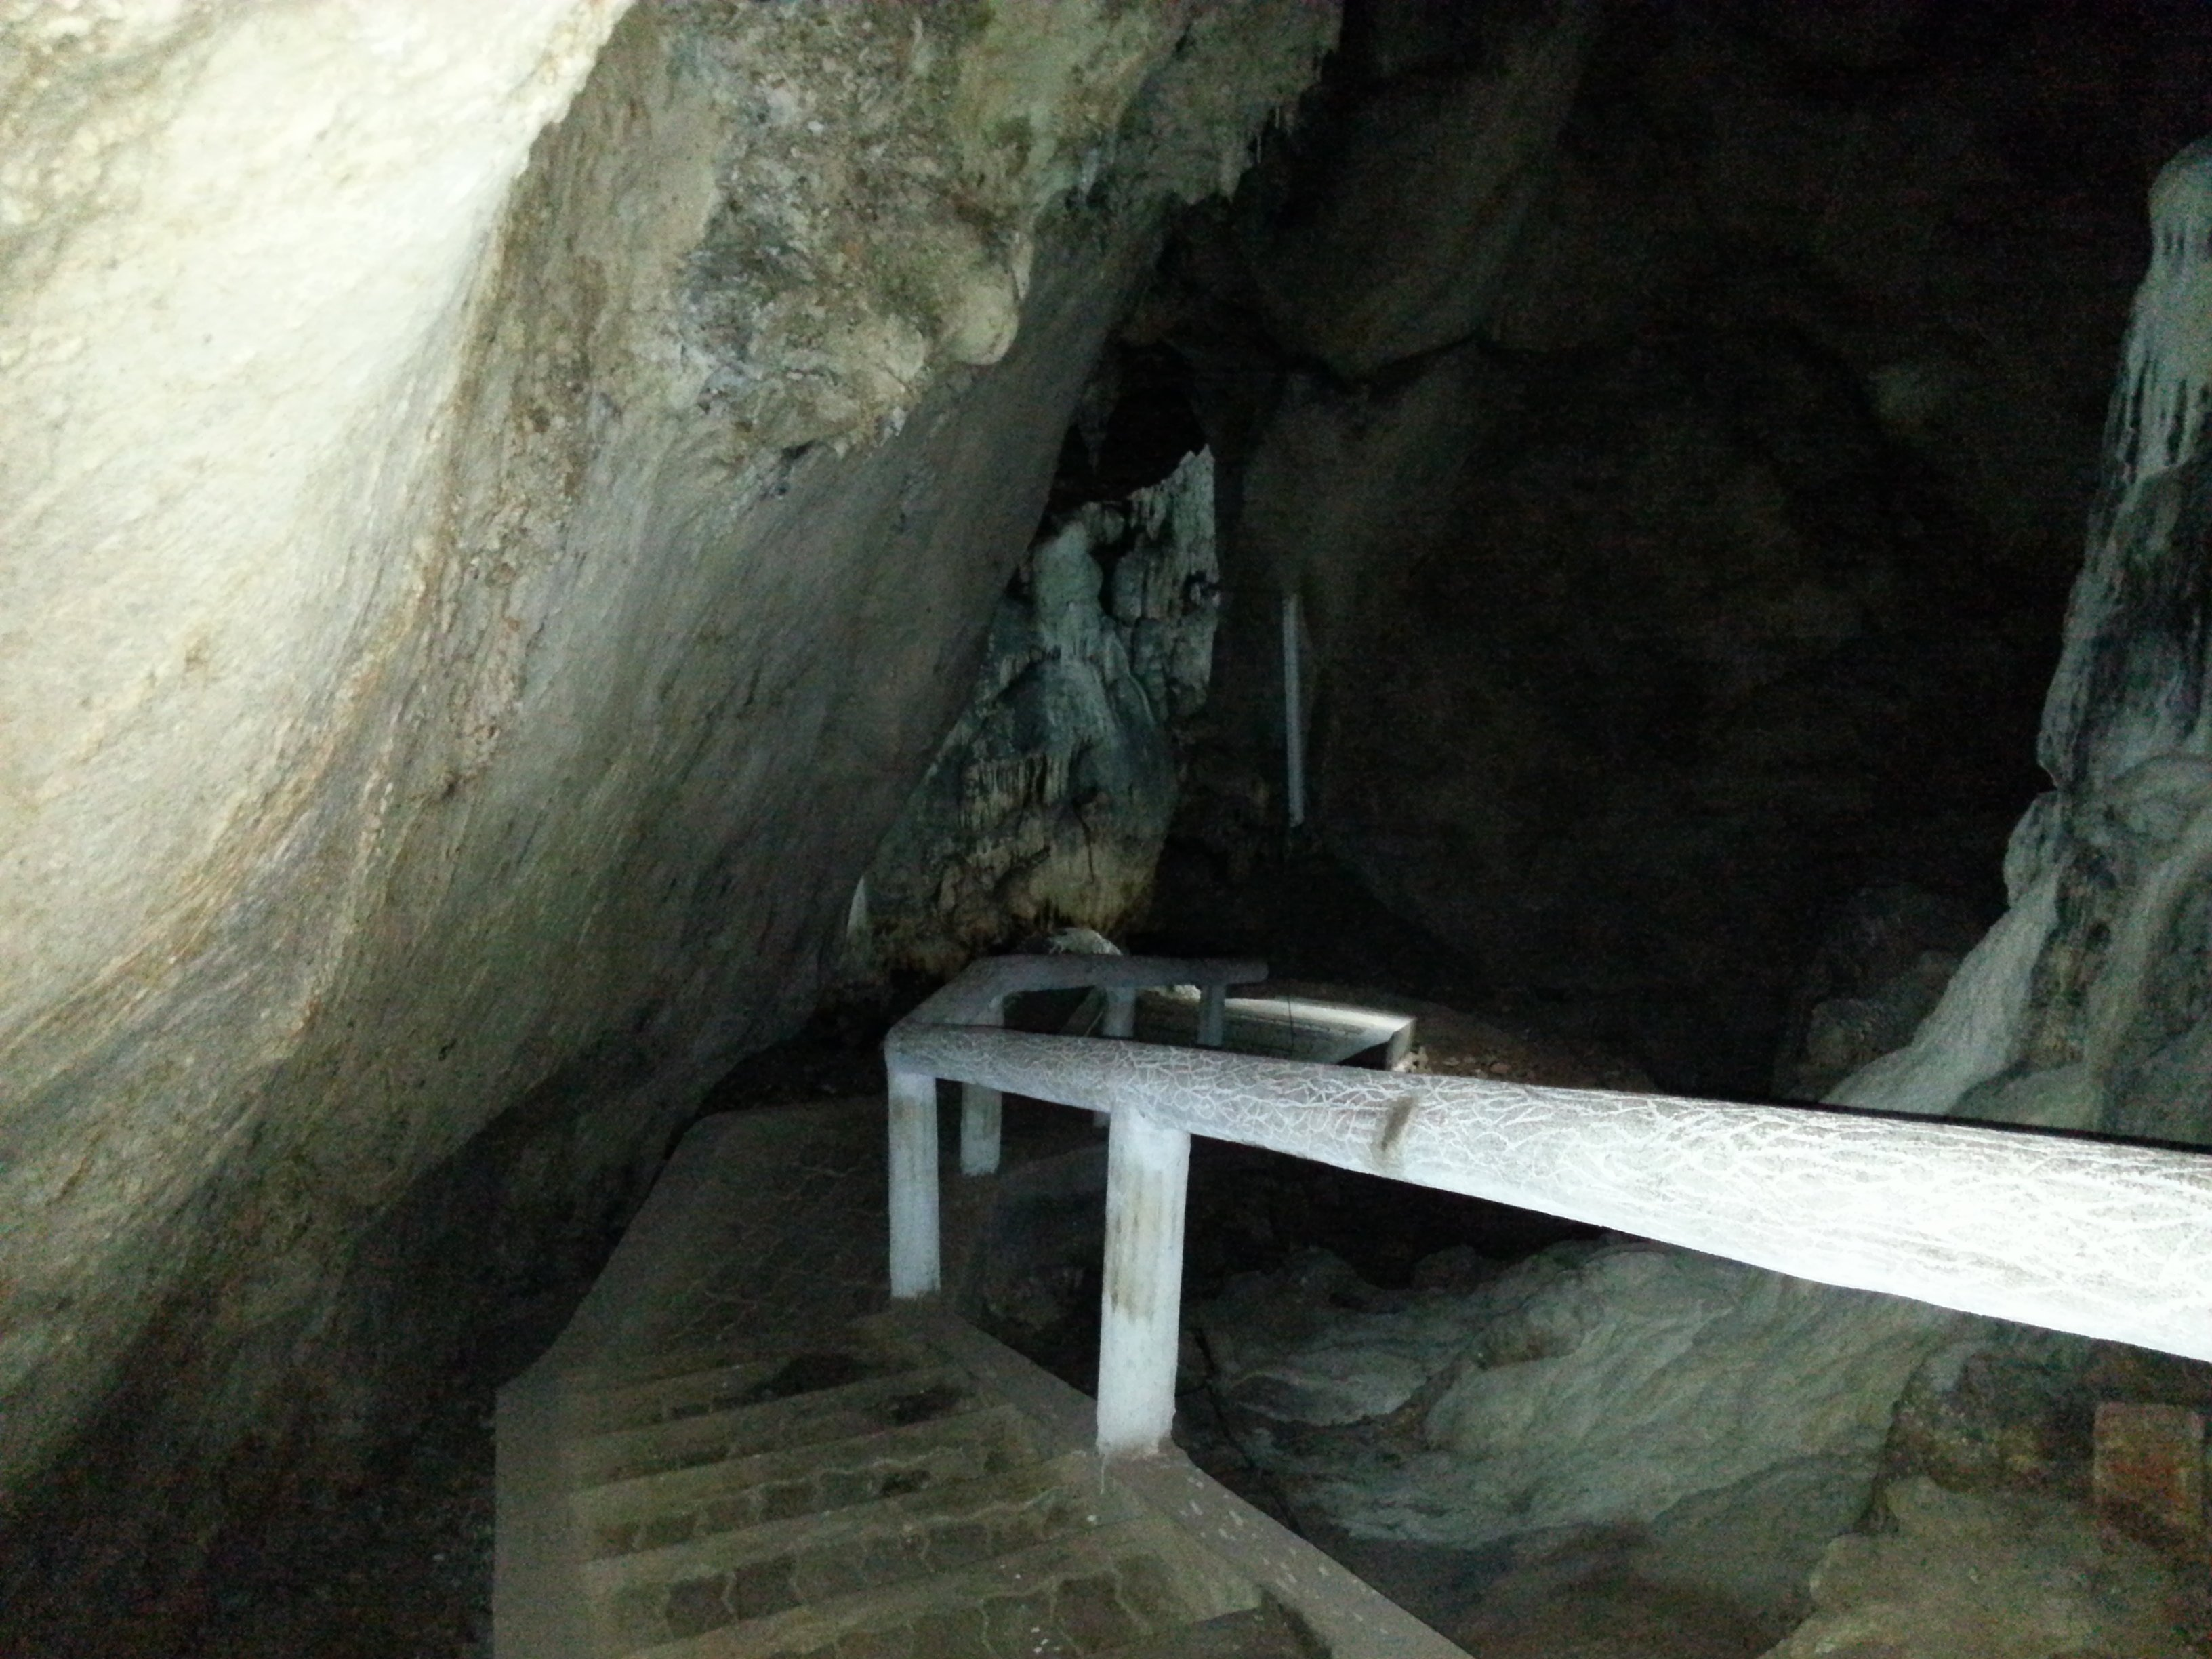 Stairs to the lower levels of Khuha Sawan Cave